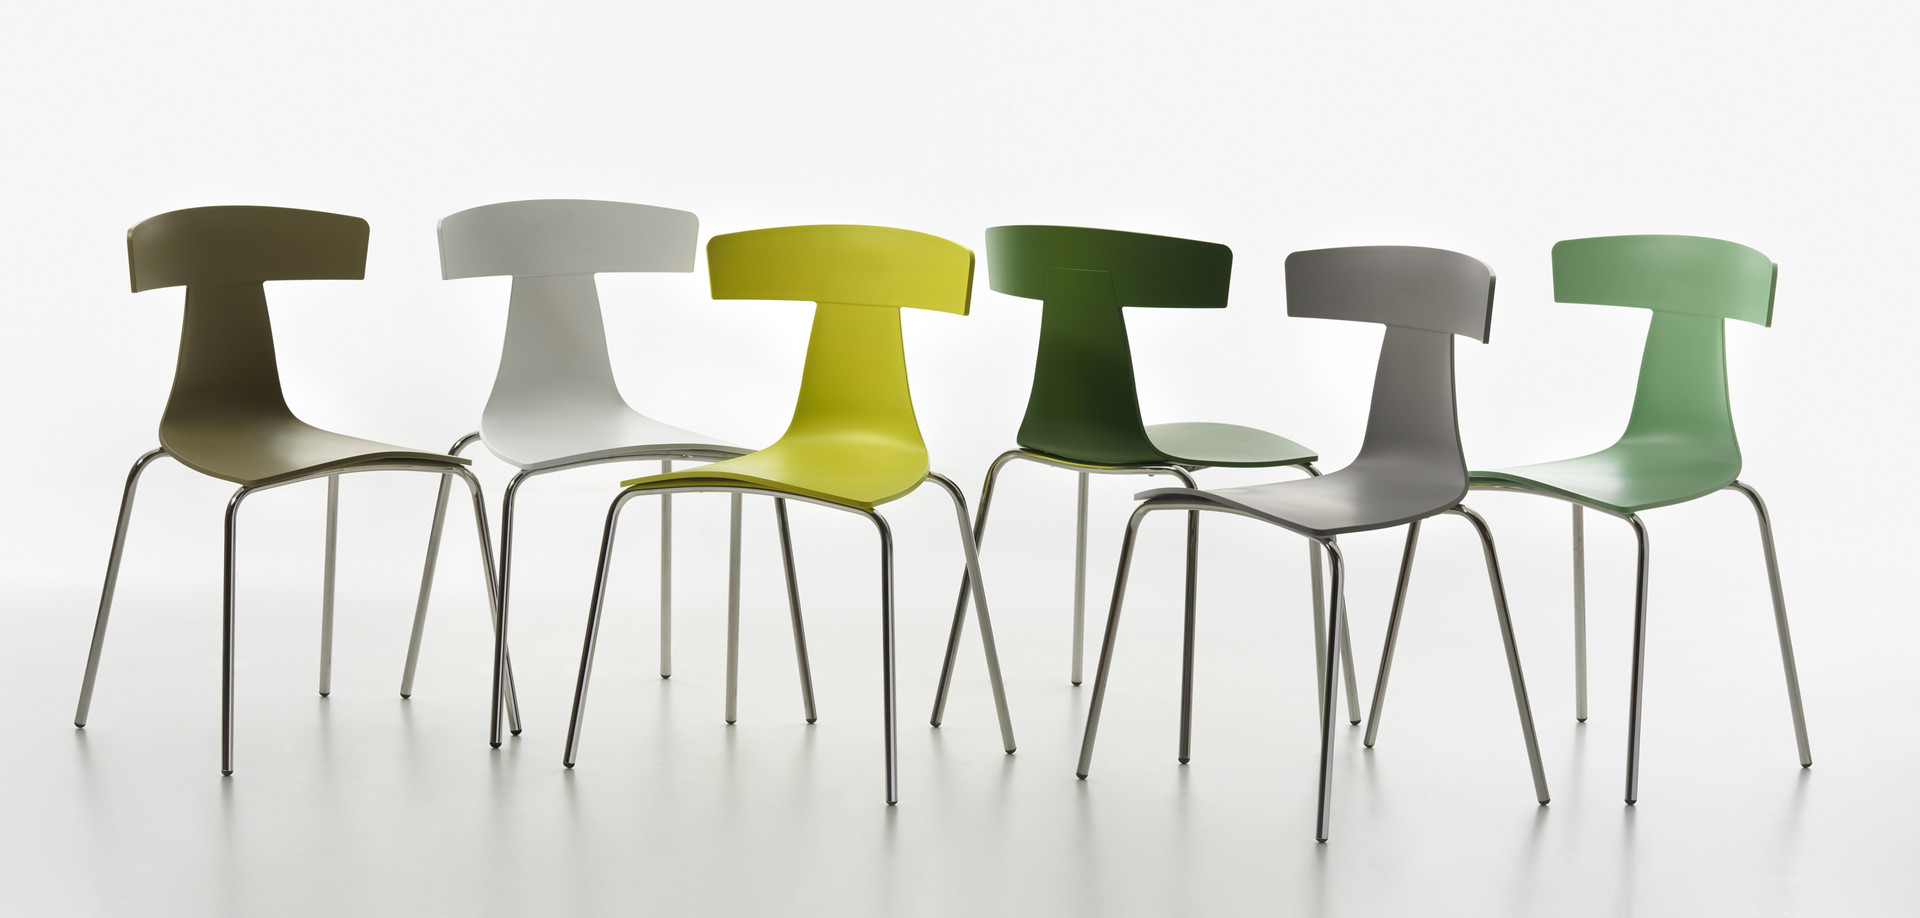 Plank - REMO plastic chair, chromed frame, plastic finishings in the colors yellow-green, white, sulfur-yellow, fern-green, signal-grey, pastel-green.